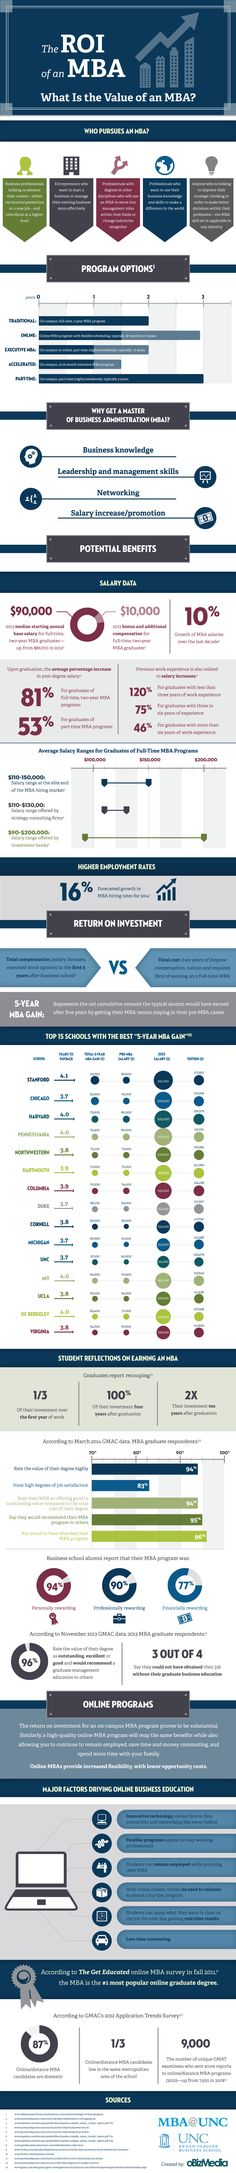 This infographic shows the Return of Investment on an online MBA degree, the most popular online degree! Education College, Higher Education, Education Degree, Business Education, Business Class, Online College Degrees, Mba Degree, Massachusetts Institute Of Technology, Harvard Business School